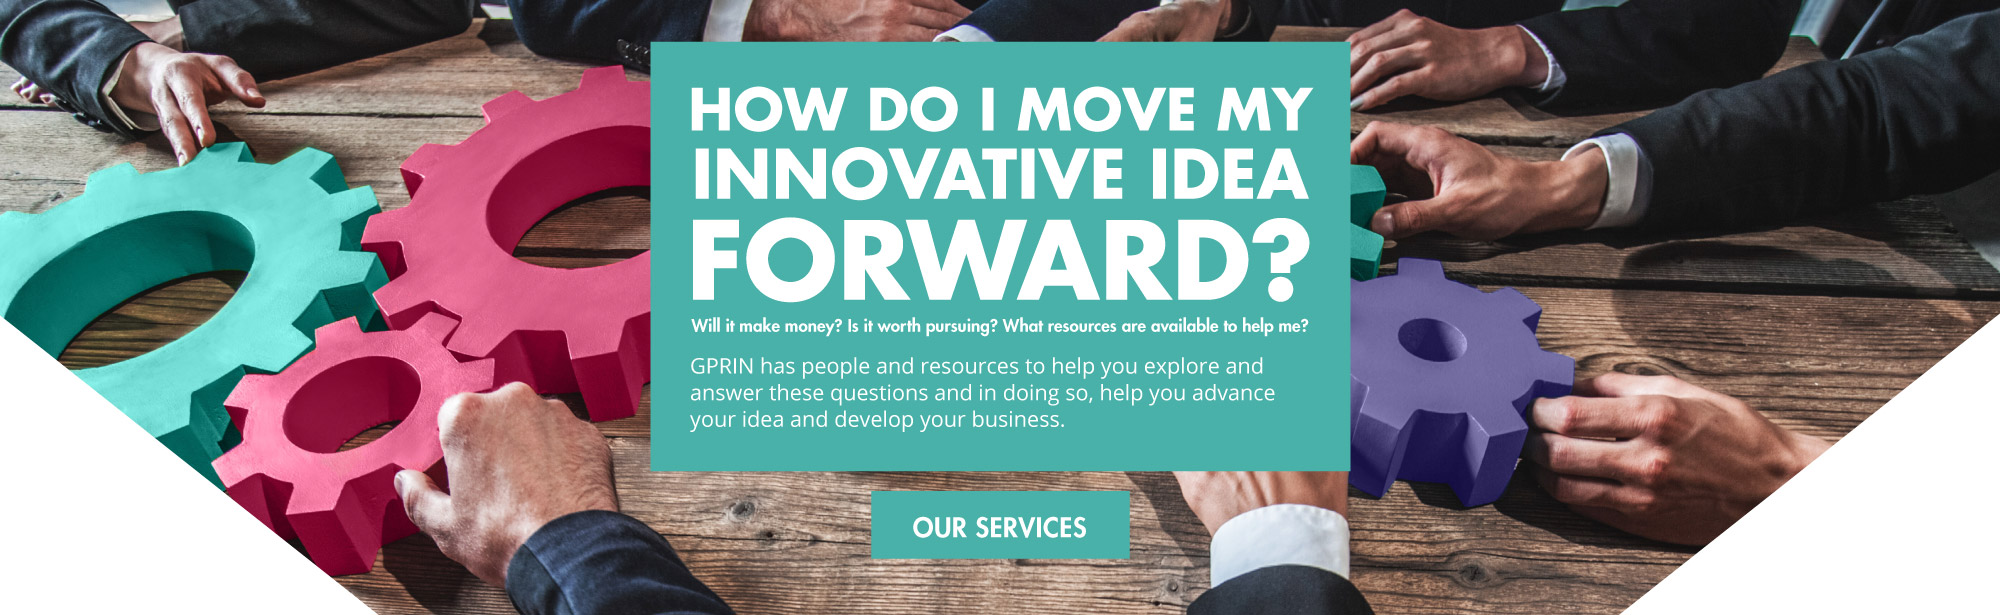 How Do I Move My Innovative Idea Forward?